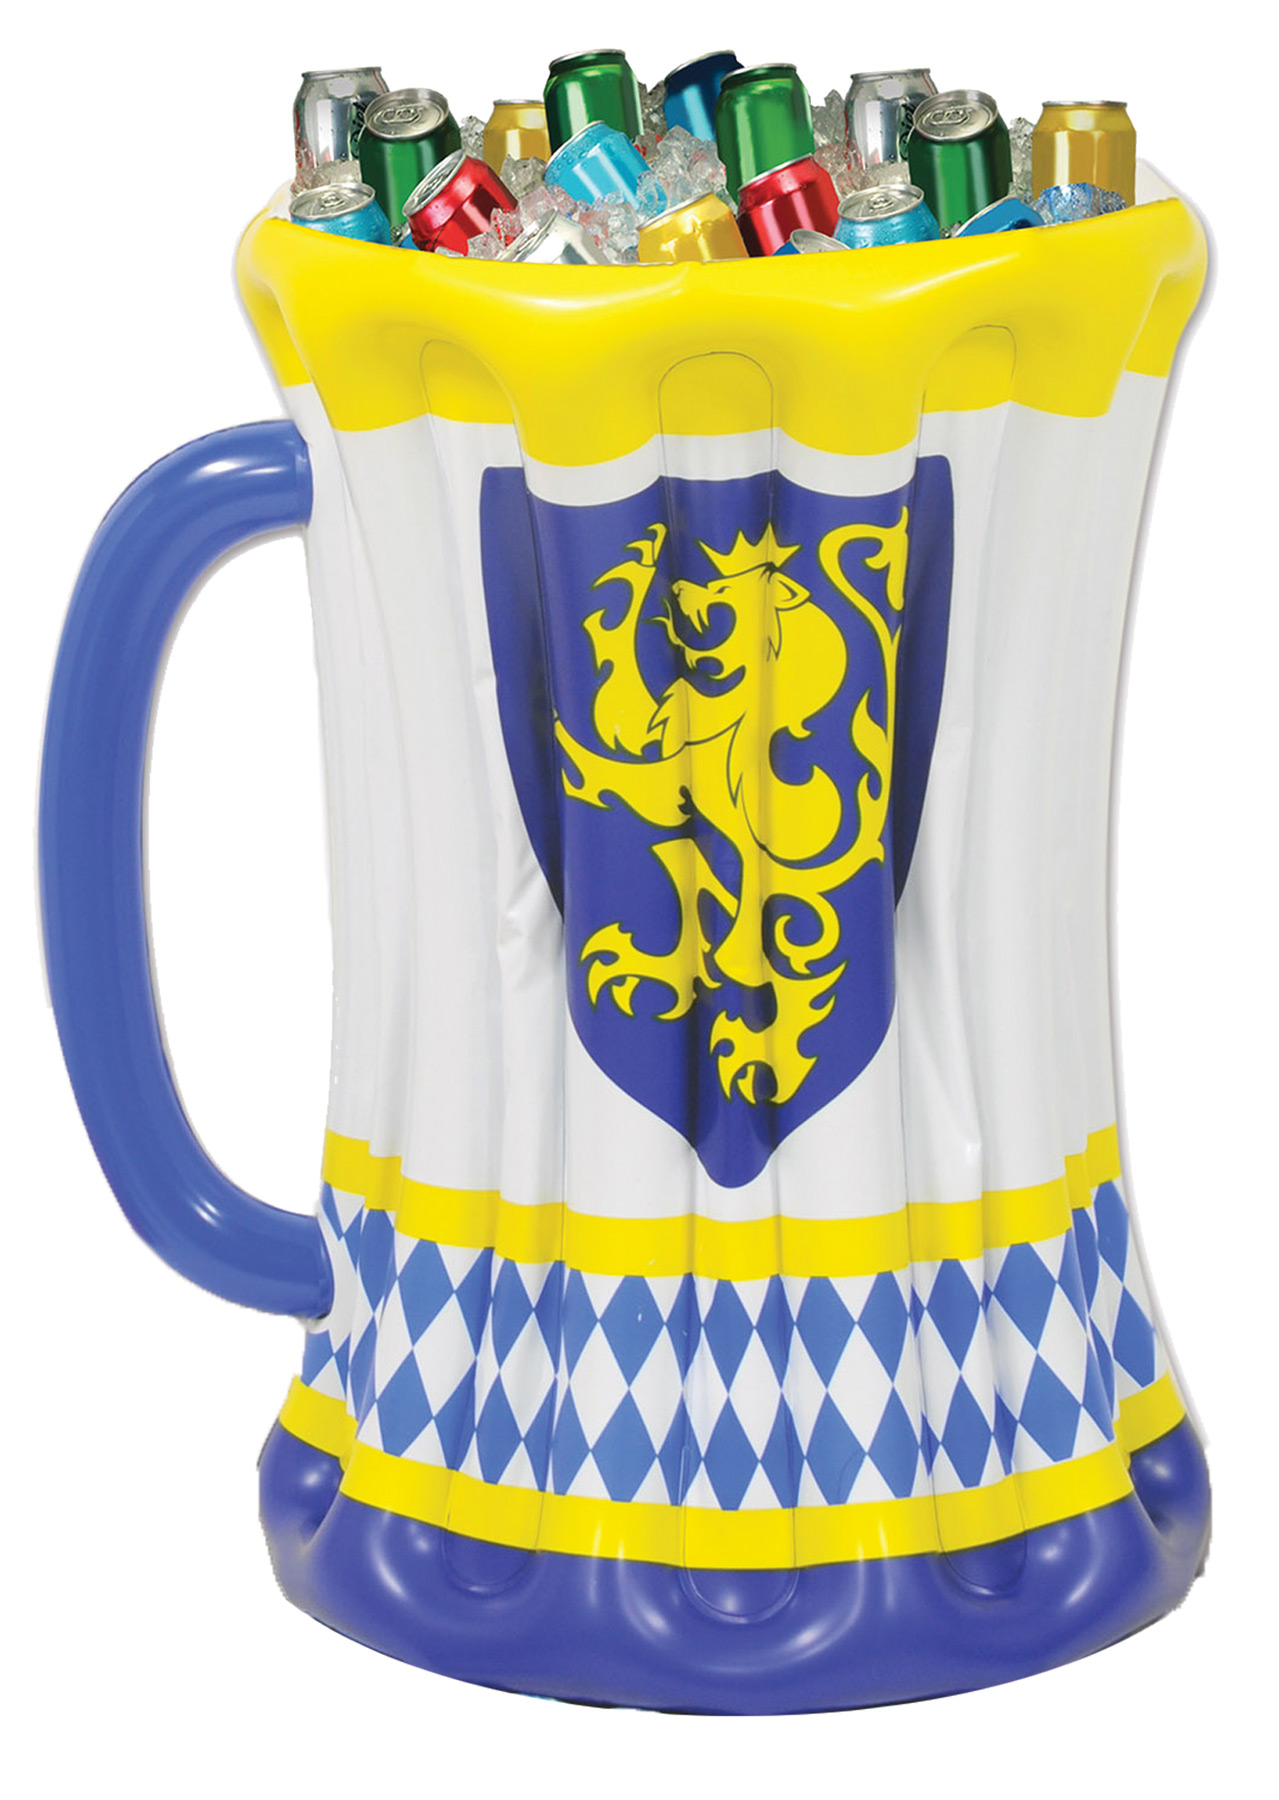 Featured Image for Inflatable Beer Stein Cooler